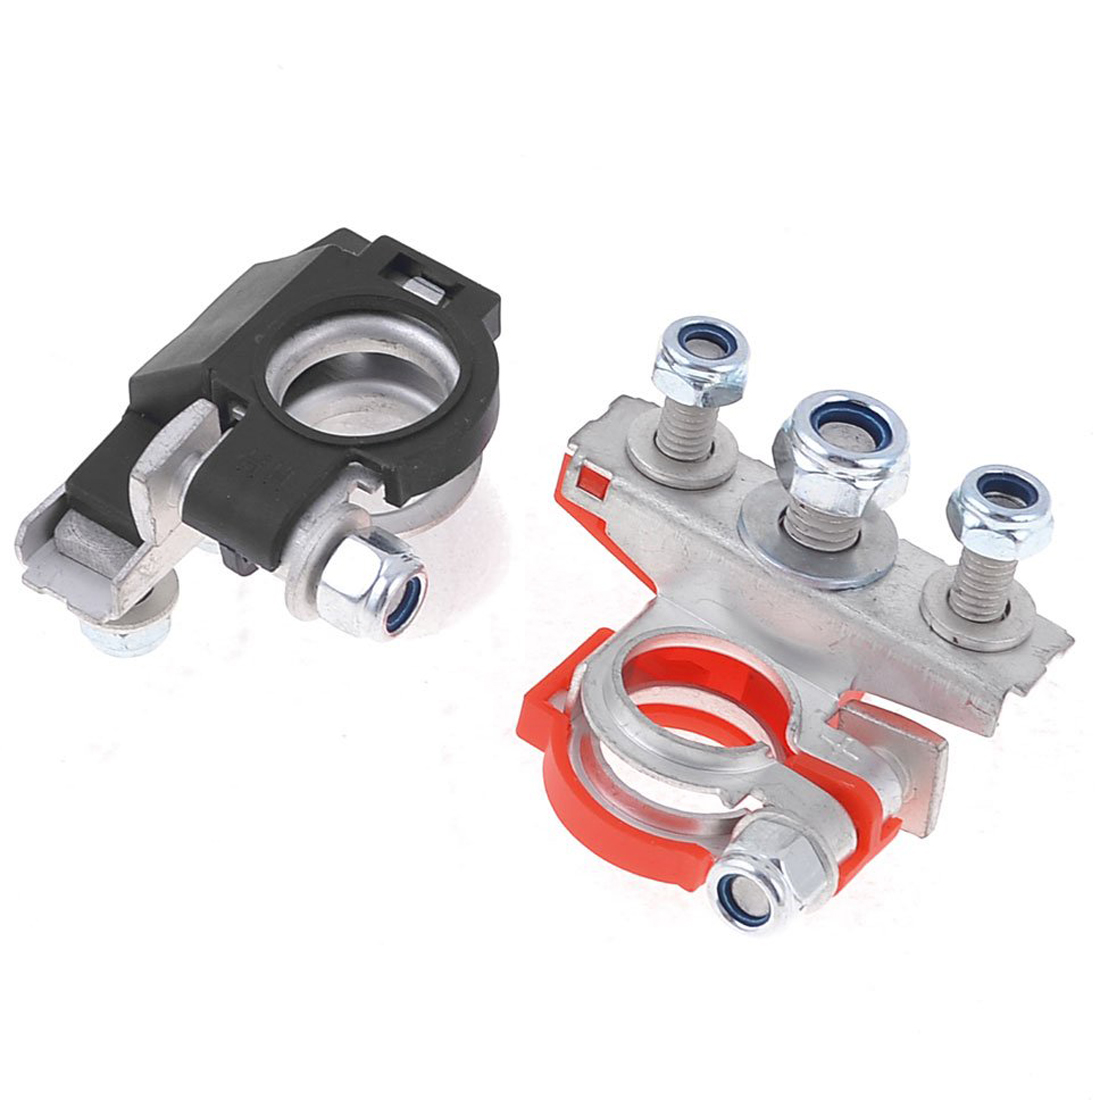 New hotsale promotion 1set car black red metal 90 degree angle type battery terminals clamps original